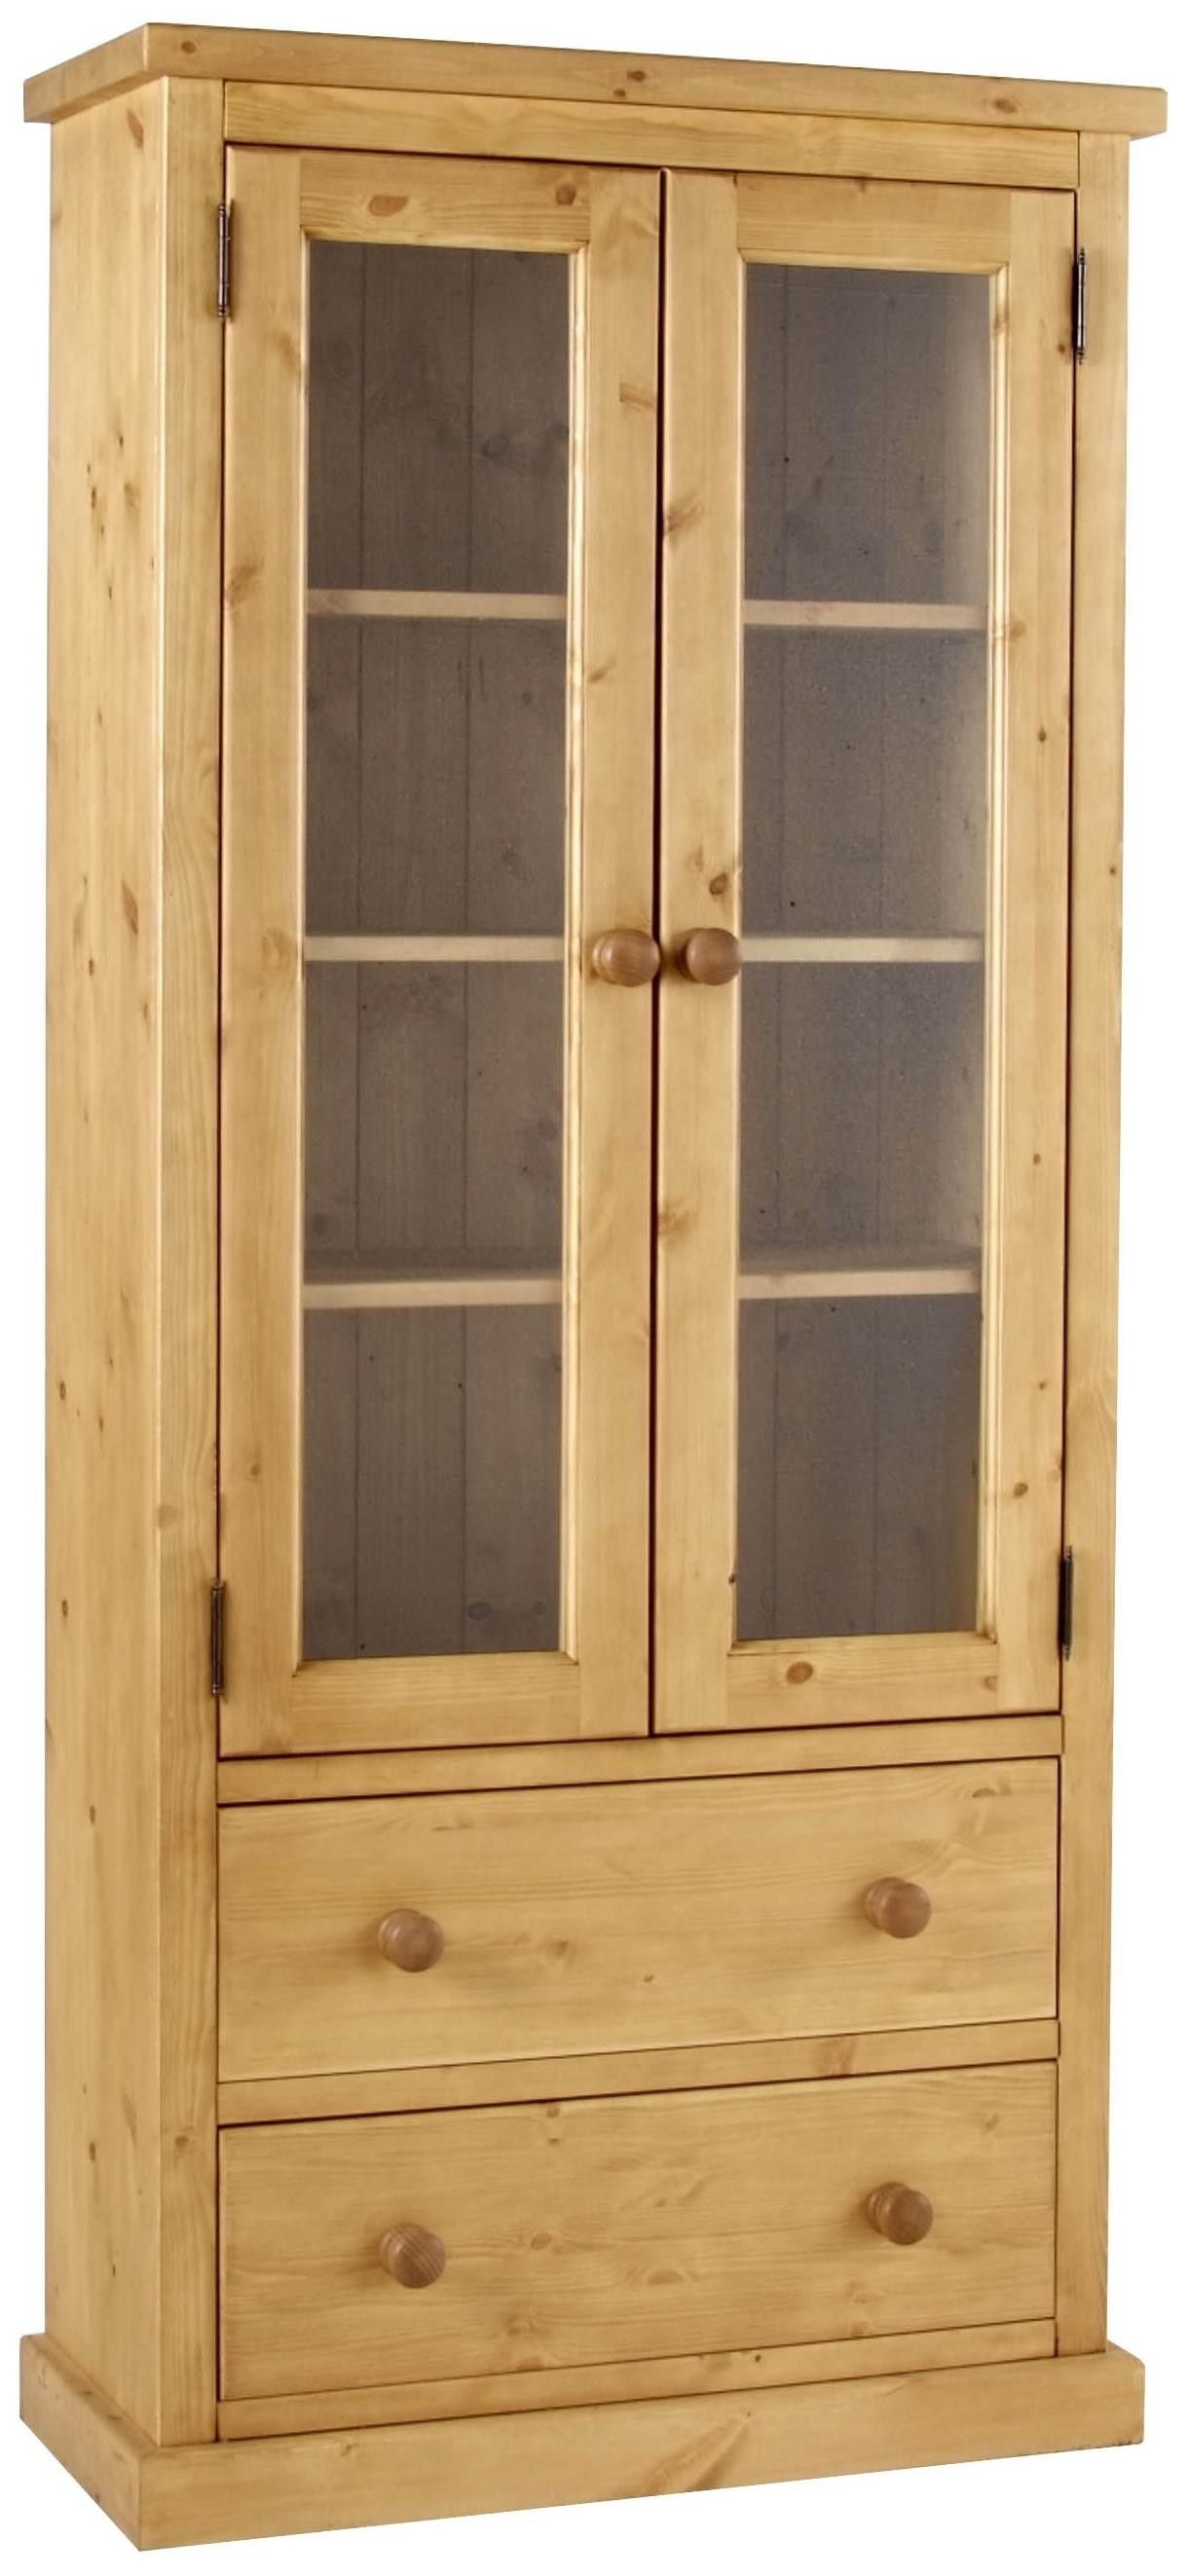 Viking GLASS CABINET Antique Wax | Willoby\'s sideboards | Pinterest ...